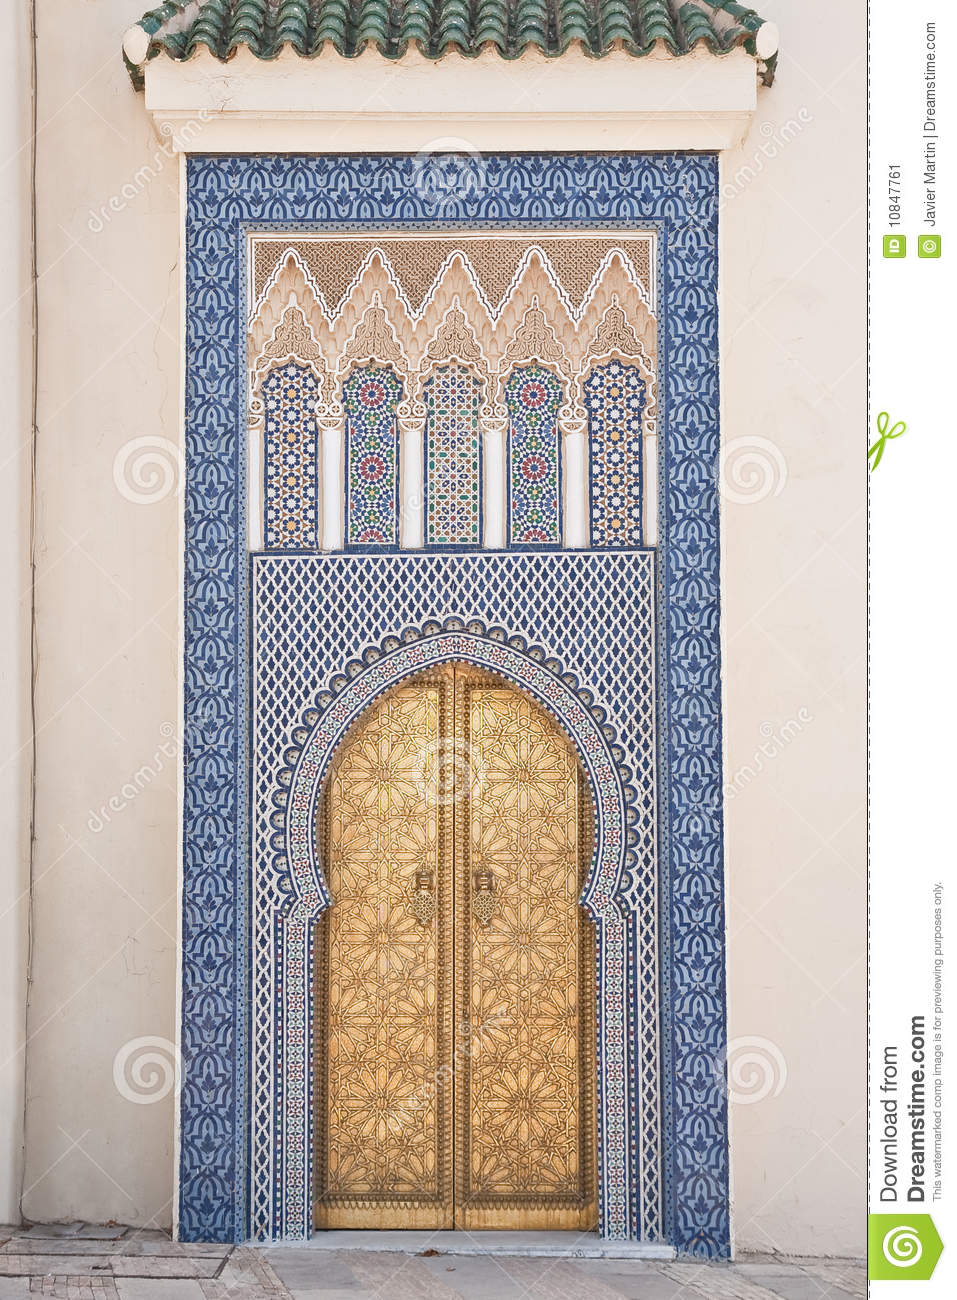 Arab Door Stock Image Image Of Culture Doorway Arches